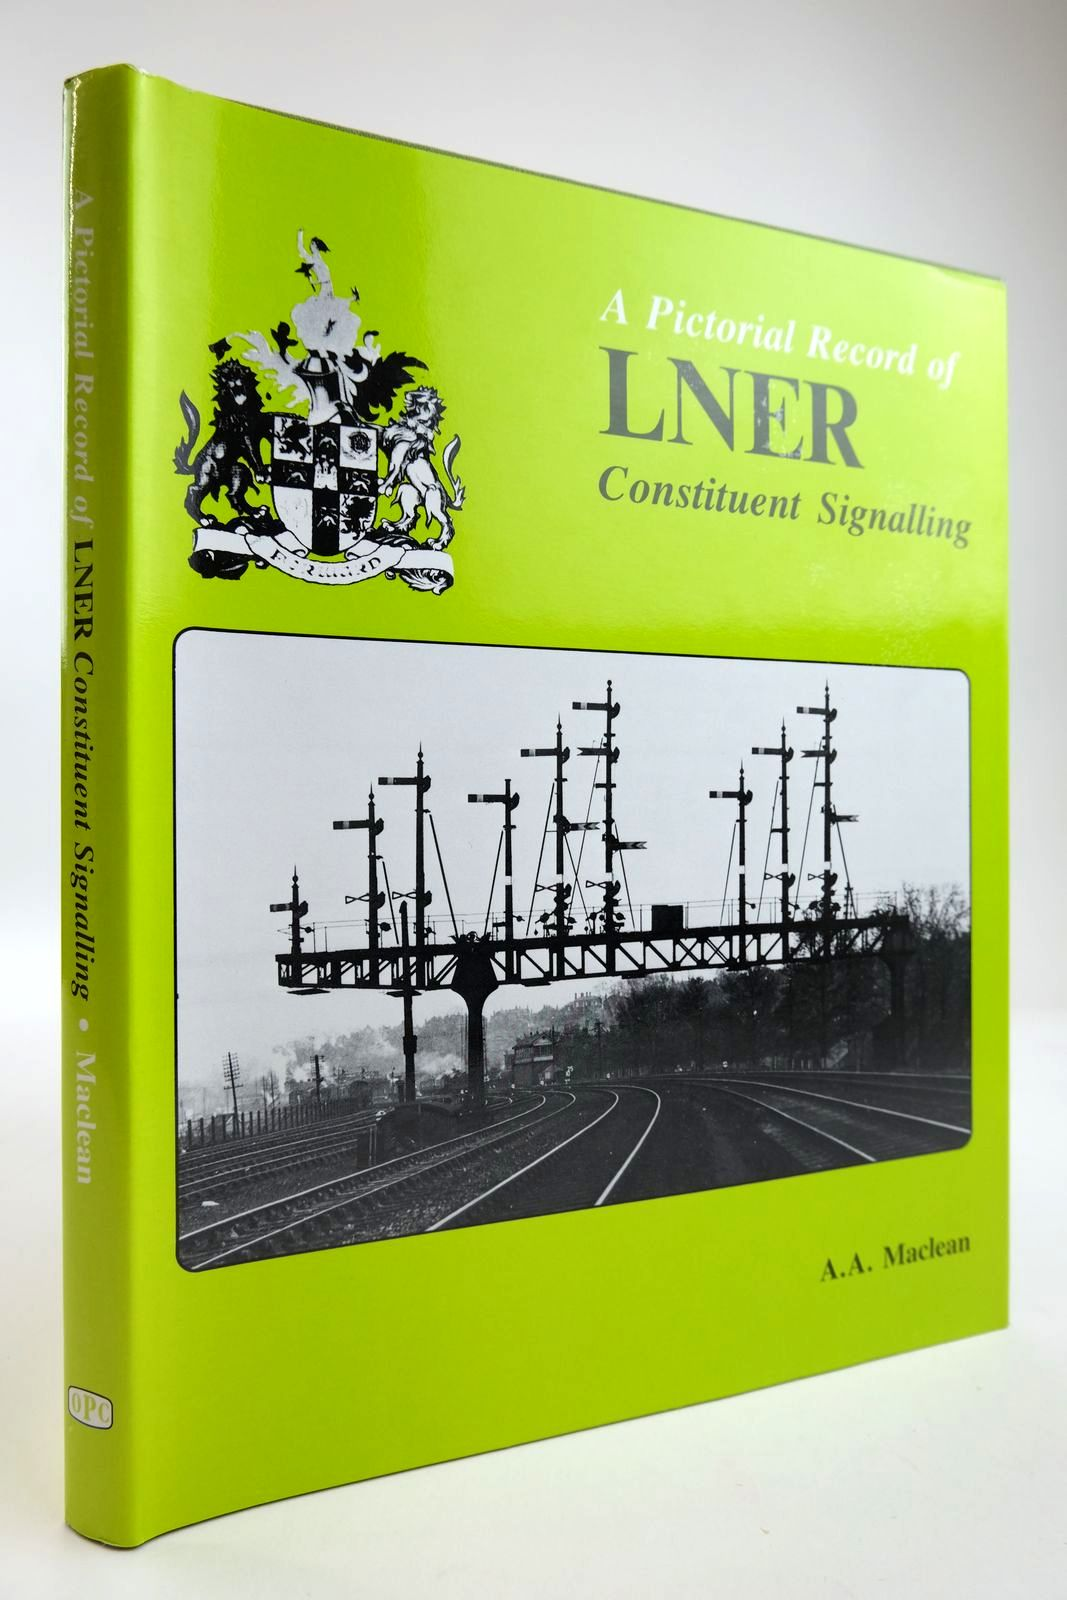 Photo of A PICTORIAL SURVEY OF LNER CONSTITUENT SIGNALLING written by Maclean, A.A. published by Oxford Publishing (STOCK CODE: 2133831)  for sale by Stella & Rose's Books